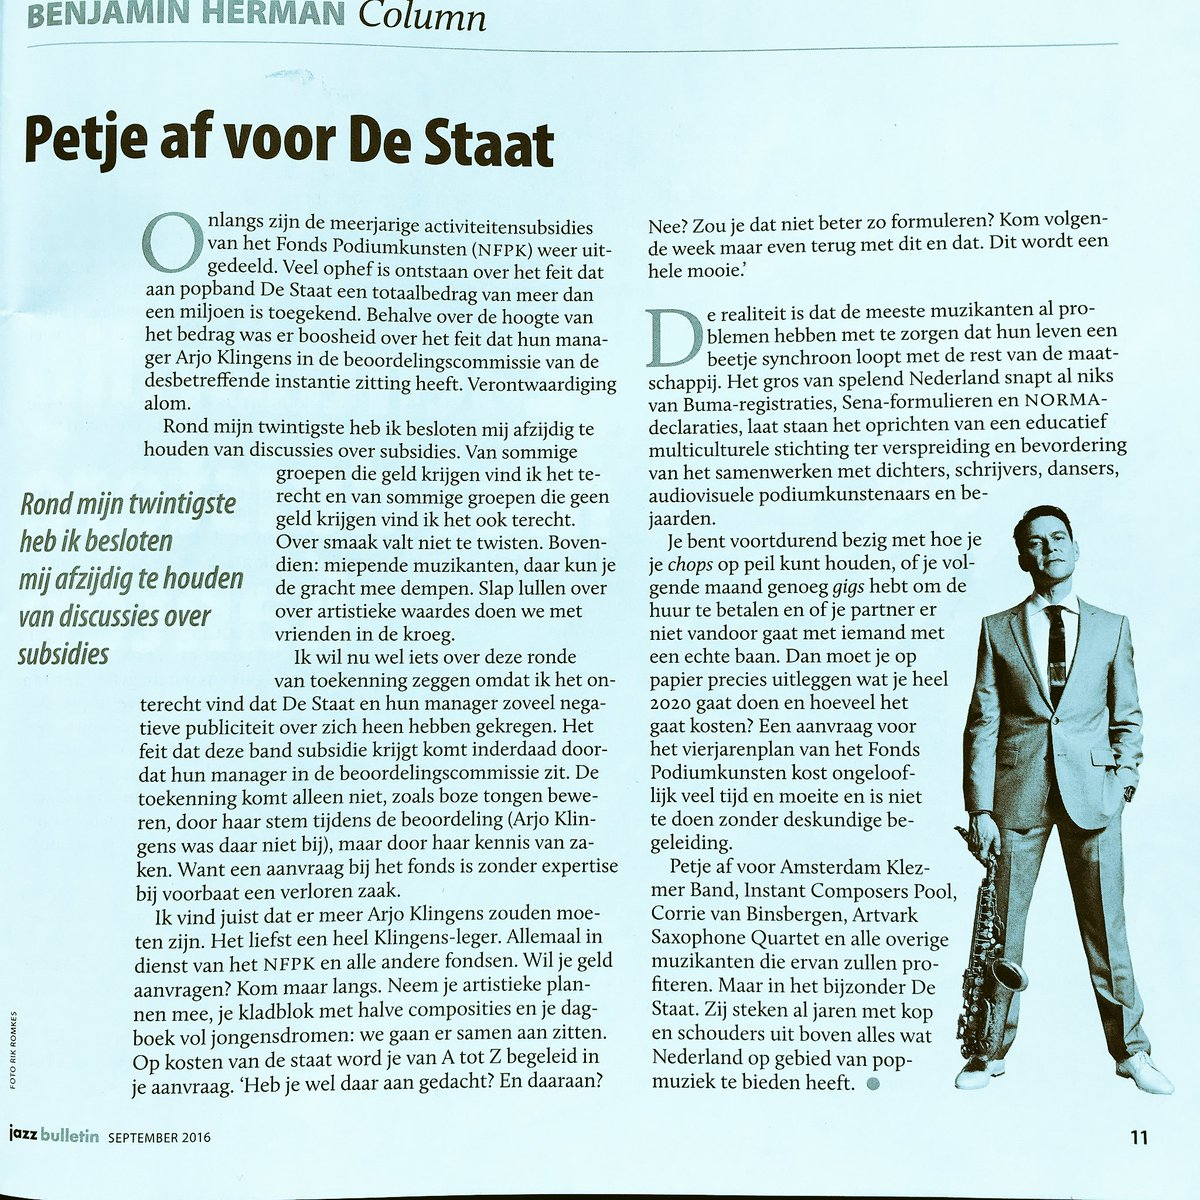 column over @destaat en @FPodiumkunsten in nieuwste #jazzbulletin https://t.co/KdoS5oMIfw